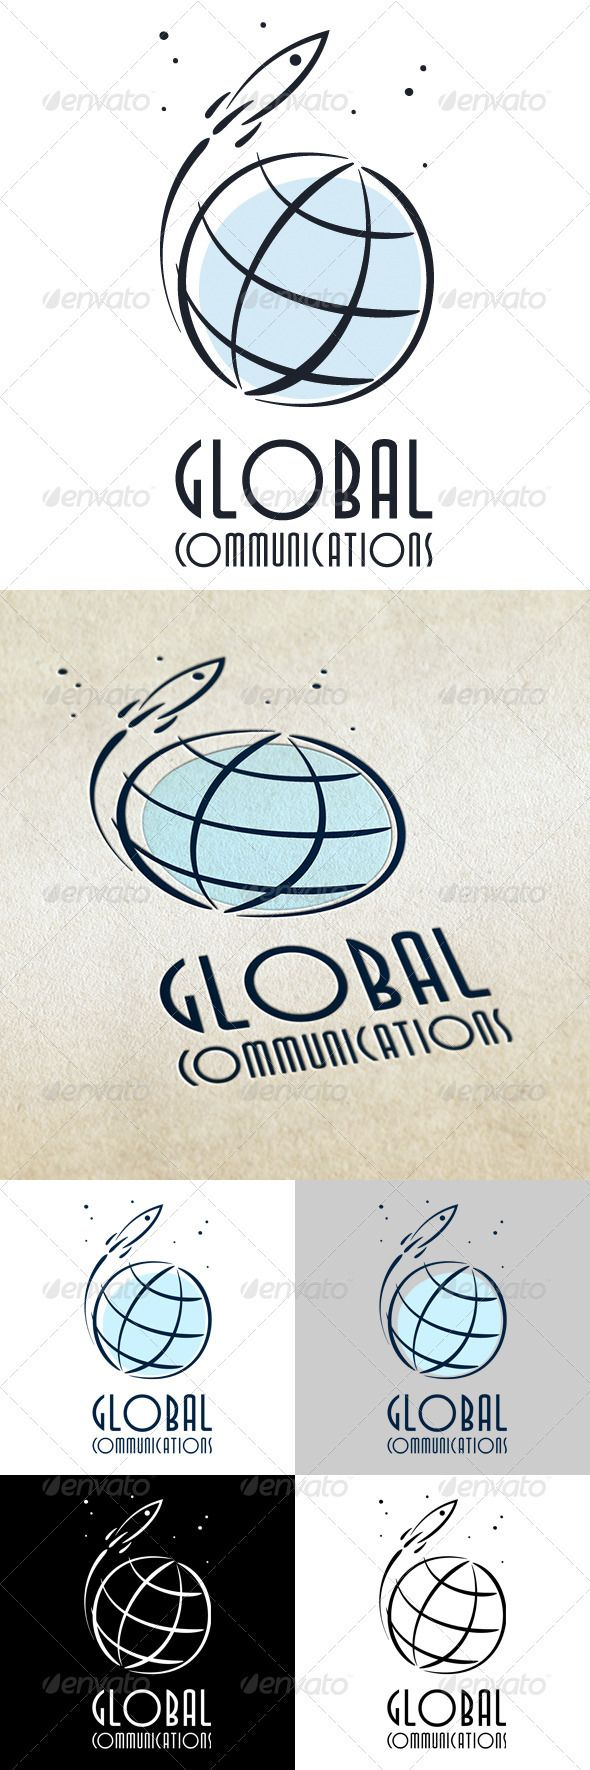 Global Communications by JOKER-DRACO Global CommunicationsLogo Template Include formats:AI EPS PNG PSD JPGRecommended free font: TallDeco http://www.fontspace.com/tho